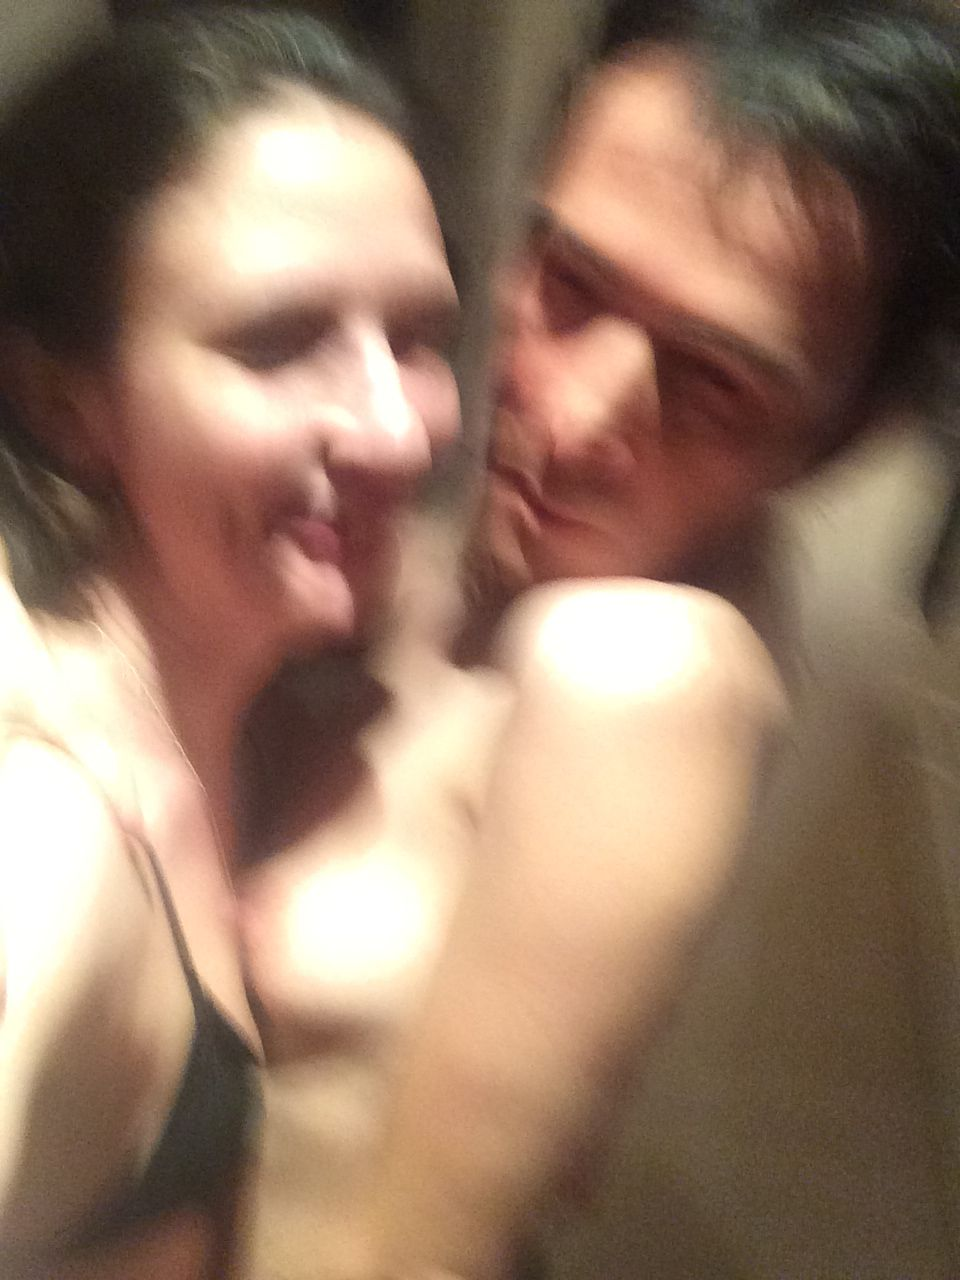 Sienna Miller topless blurry pic wearing a man mask